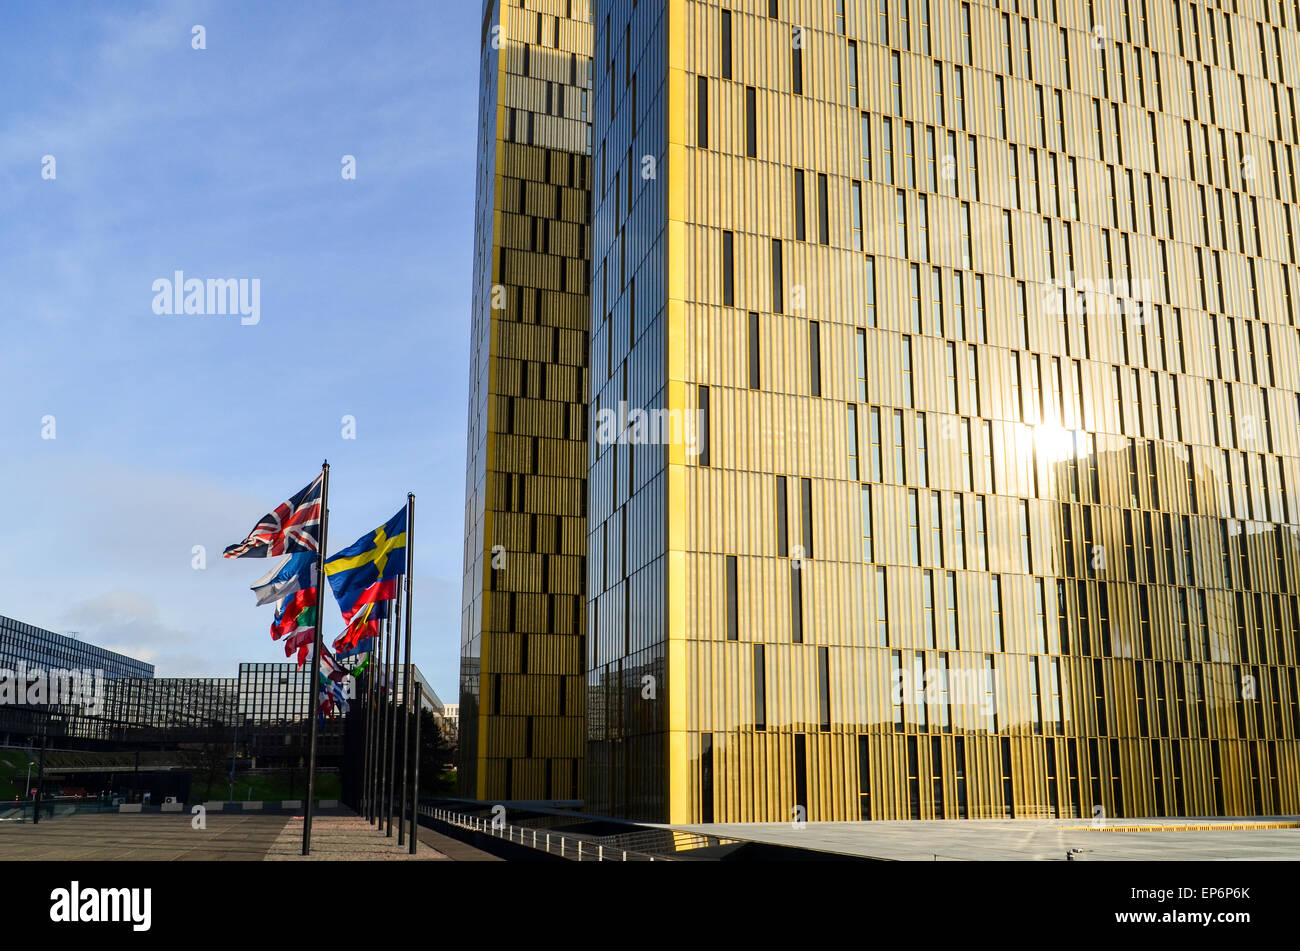 Golden twin towers of the Court of Justice of the European Union, in European Quarter, Kirchberg, Luxembourg - Stock Image